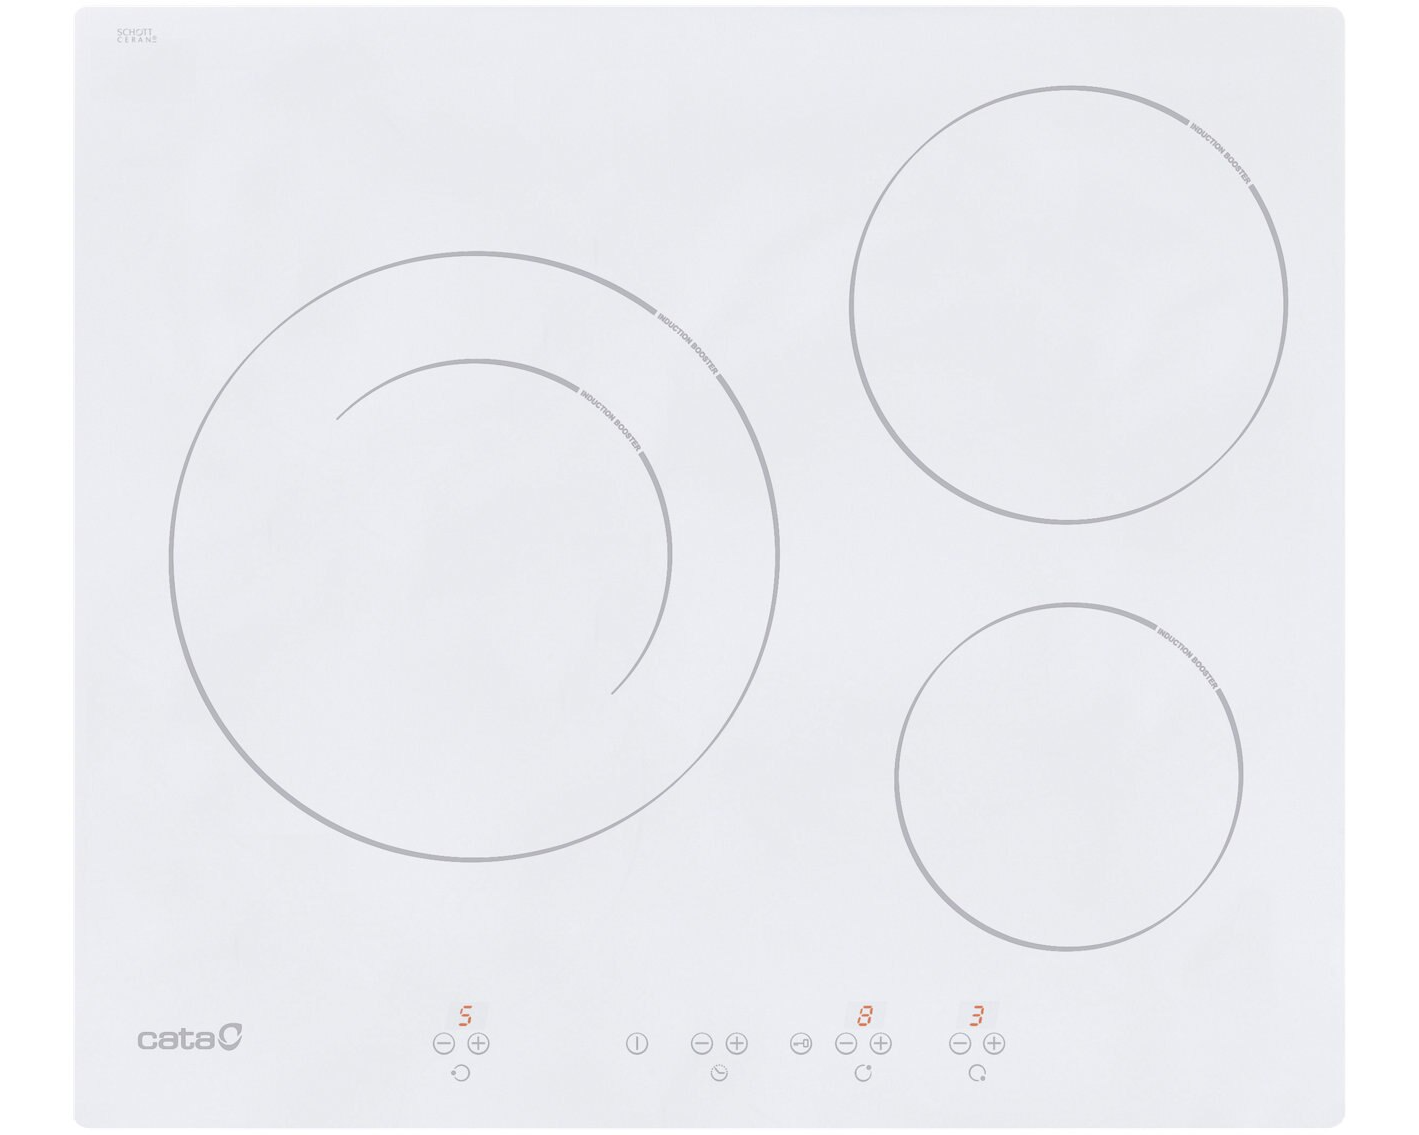 CATA Ib 6203 6.3 x 59 cm induction hob with 3 cooking zones